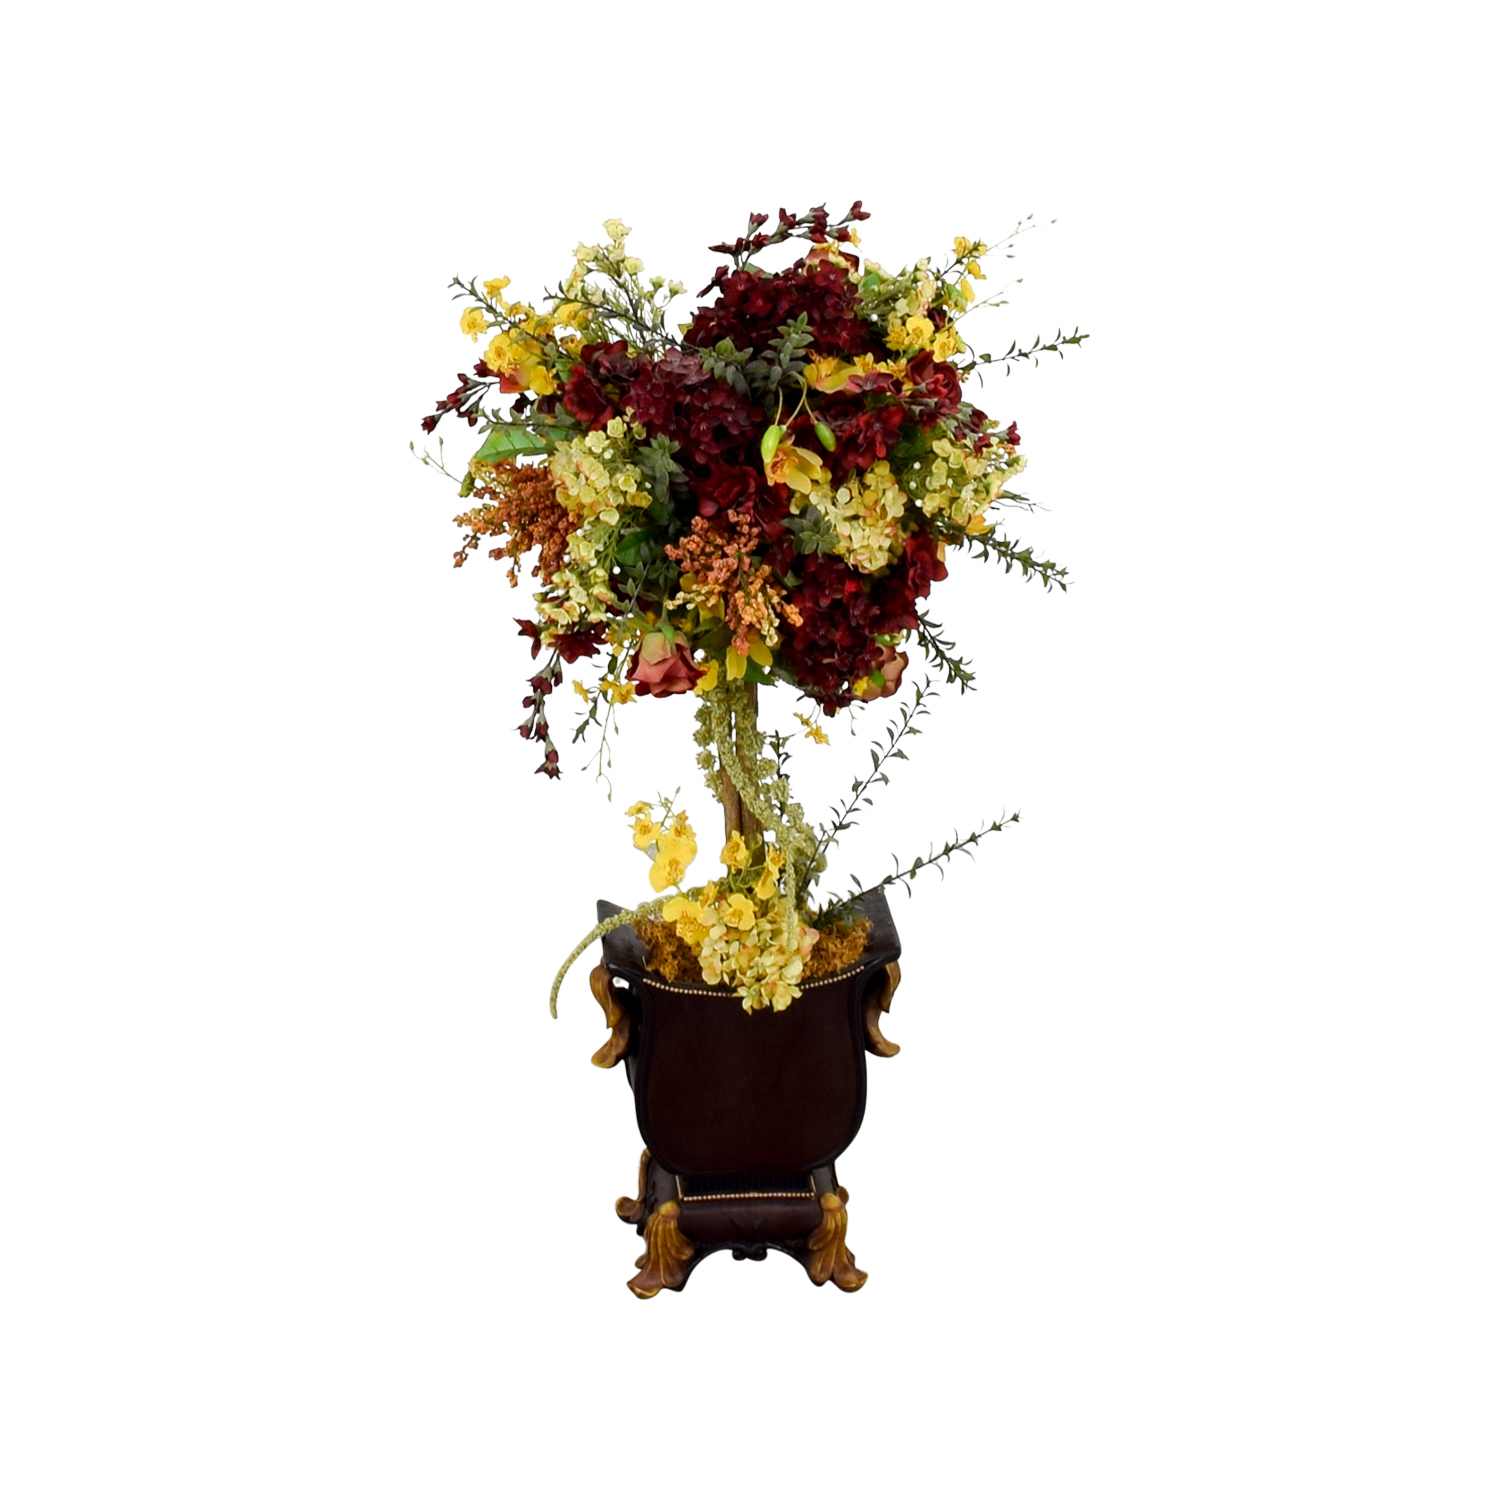 Ballard Designs Ballard Designs Flower Topiary nj